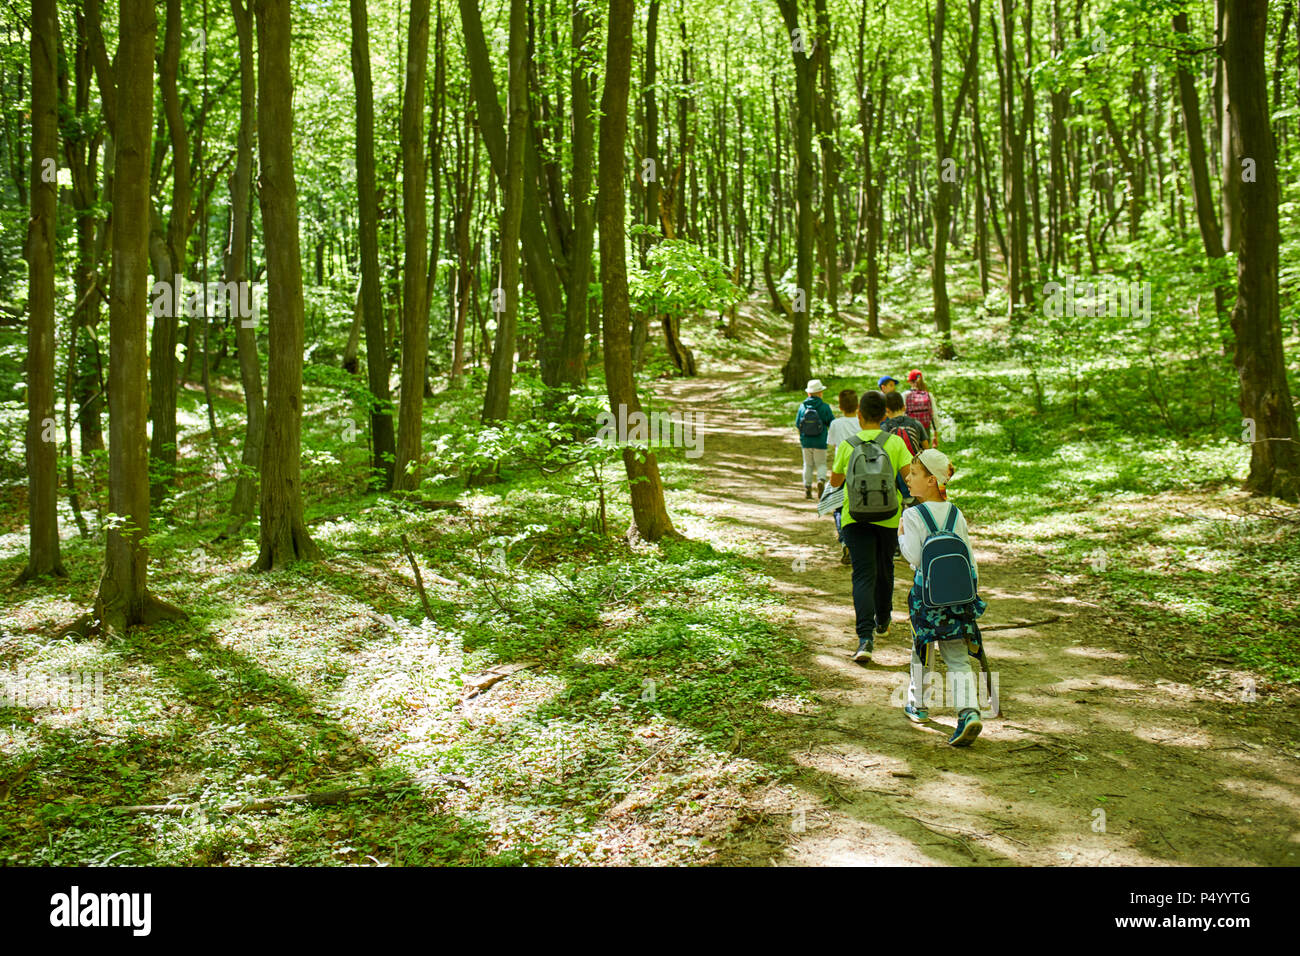 Kids on a field trip in forest - Stock Image